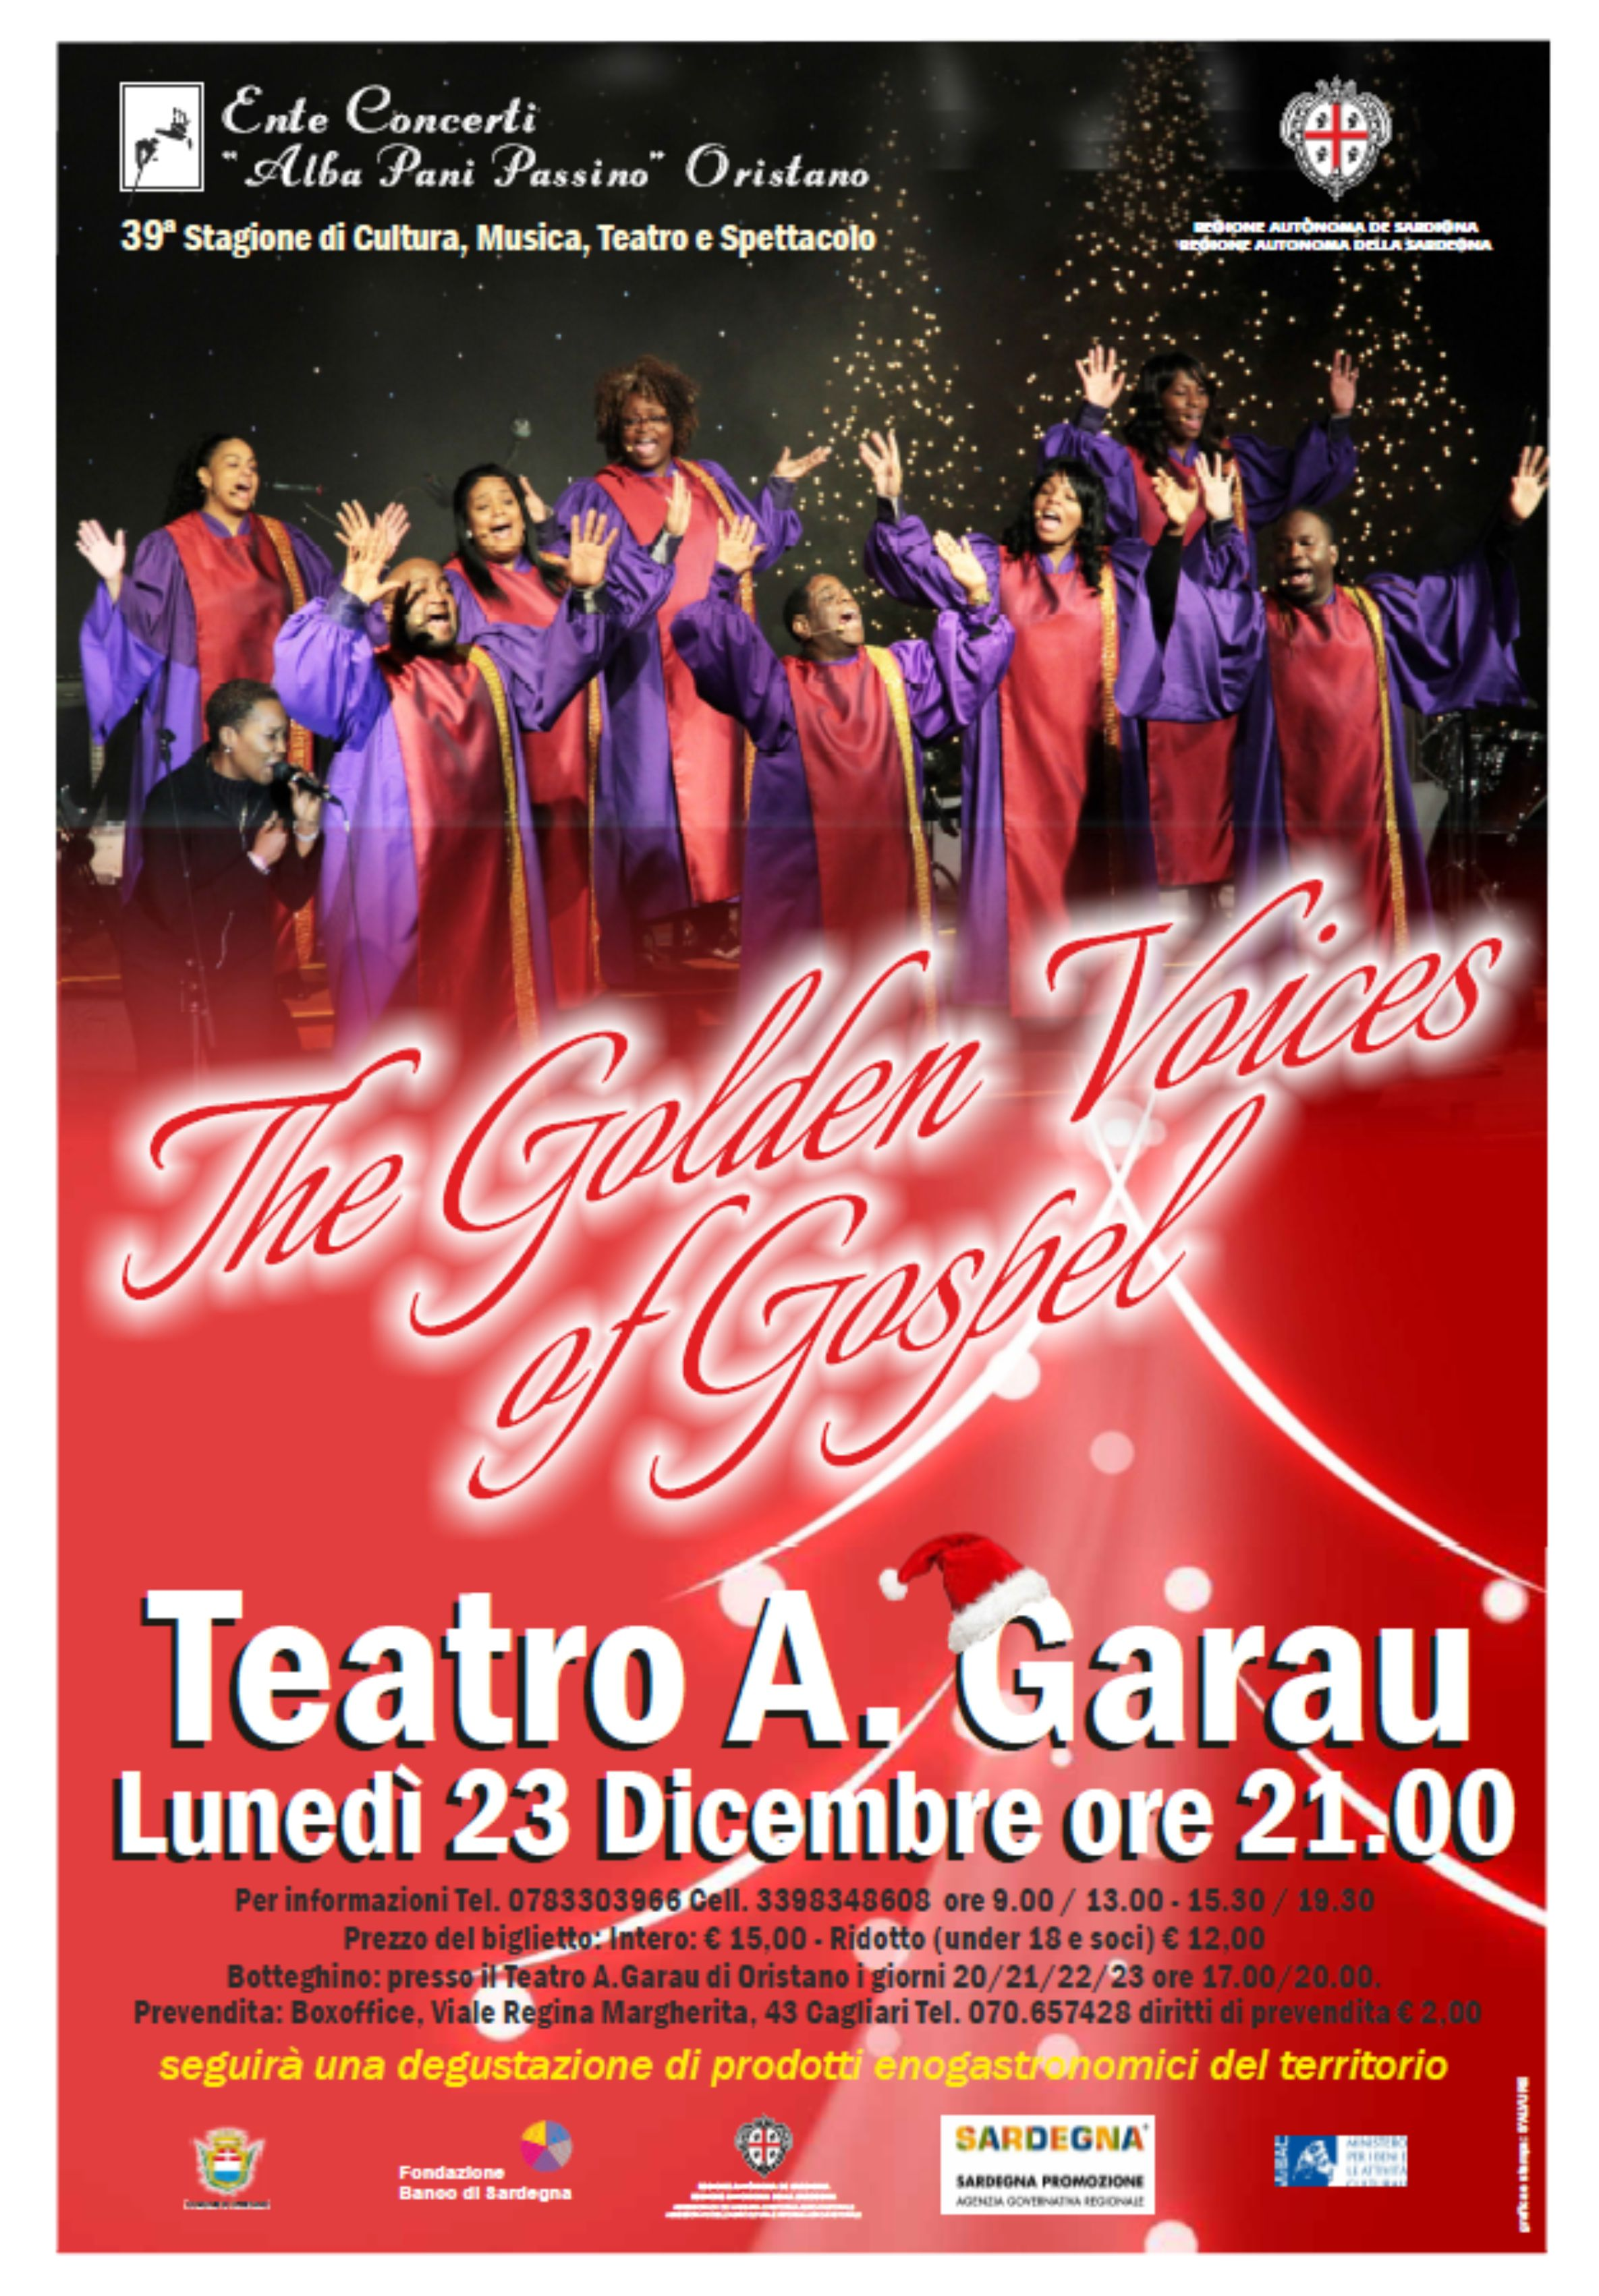 The Golden Voices of Gospel - Lunedì 23 Dicembre a Oristano